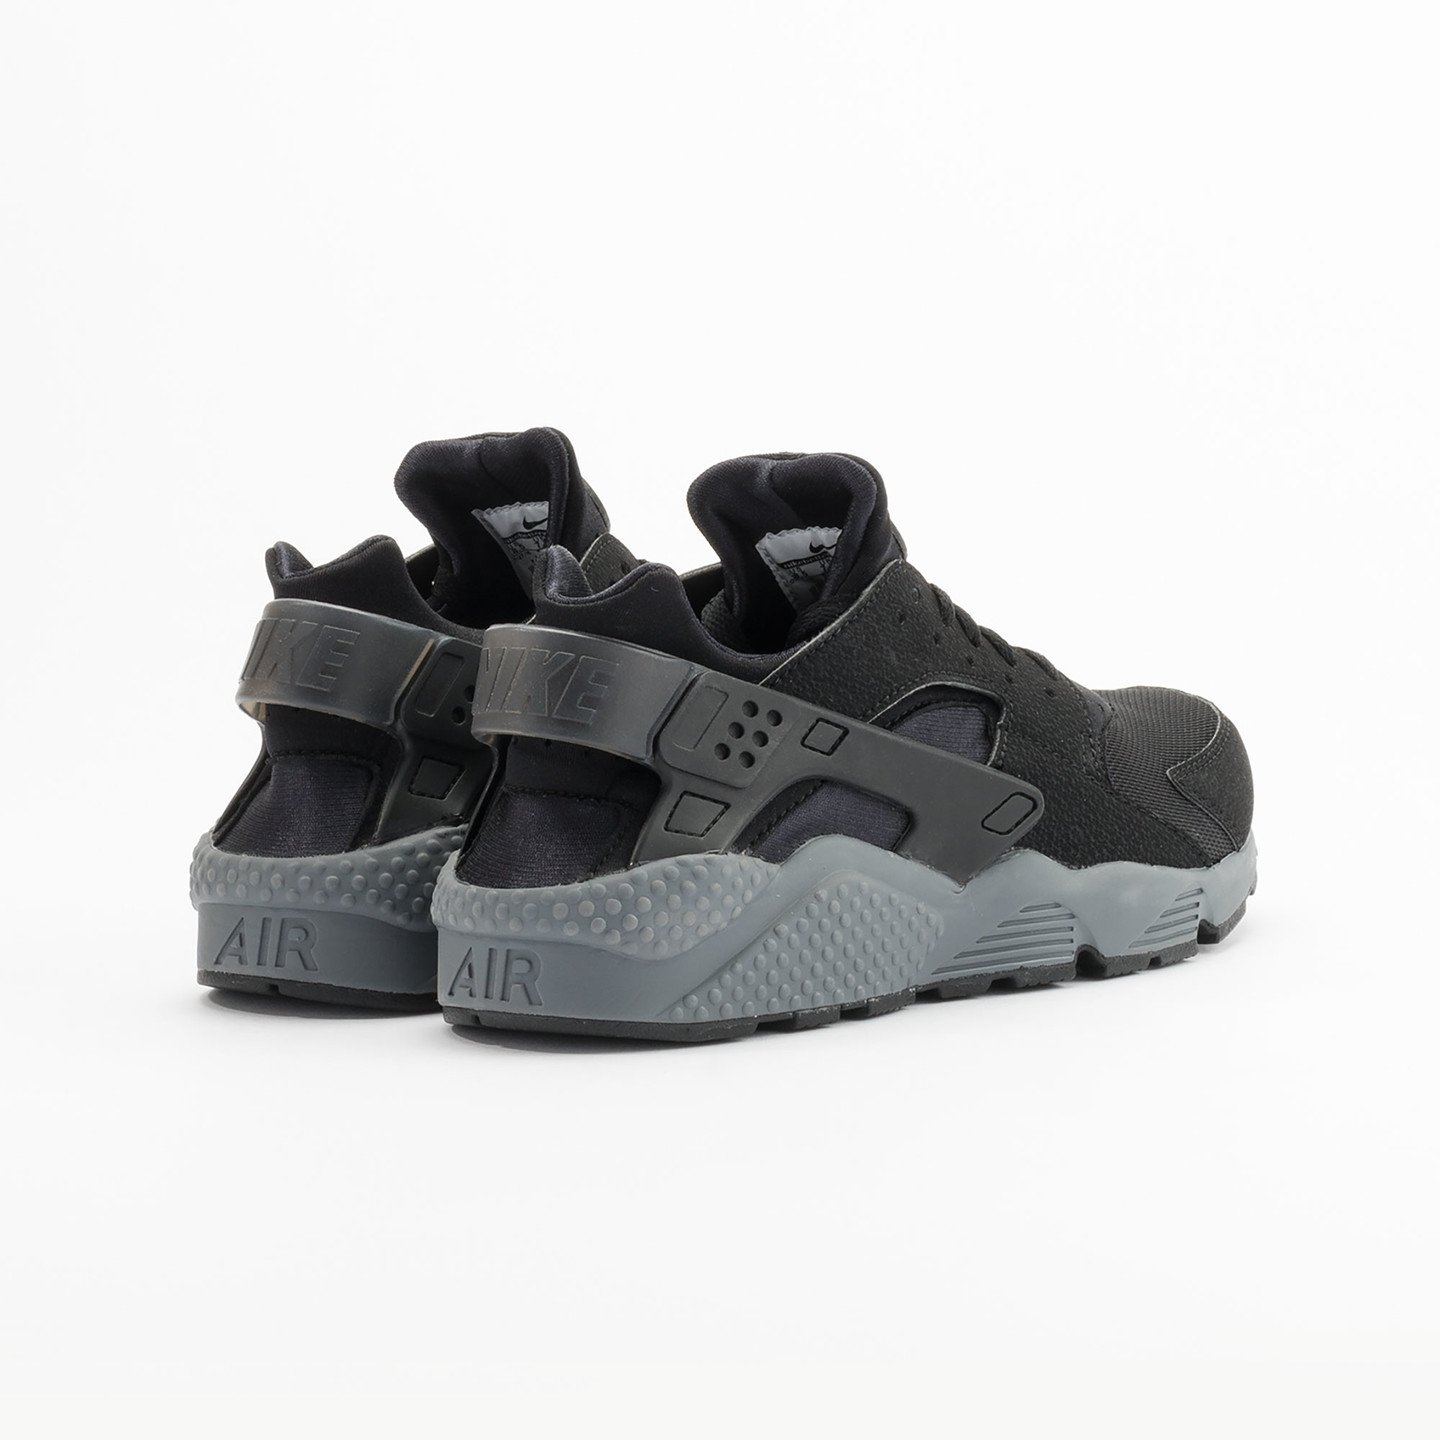 Nike Air Huarache Black / Dark Grey 318429-010-44